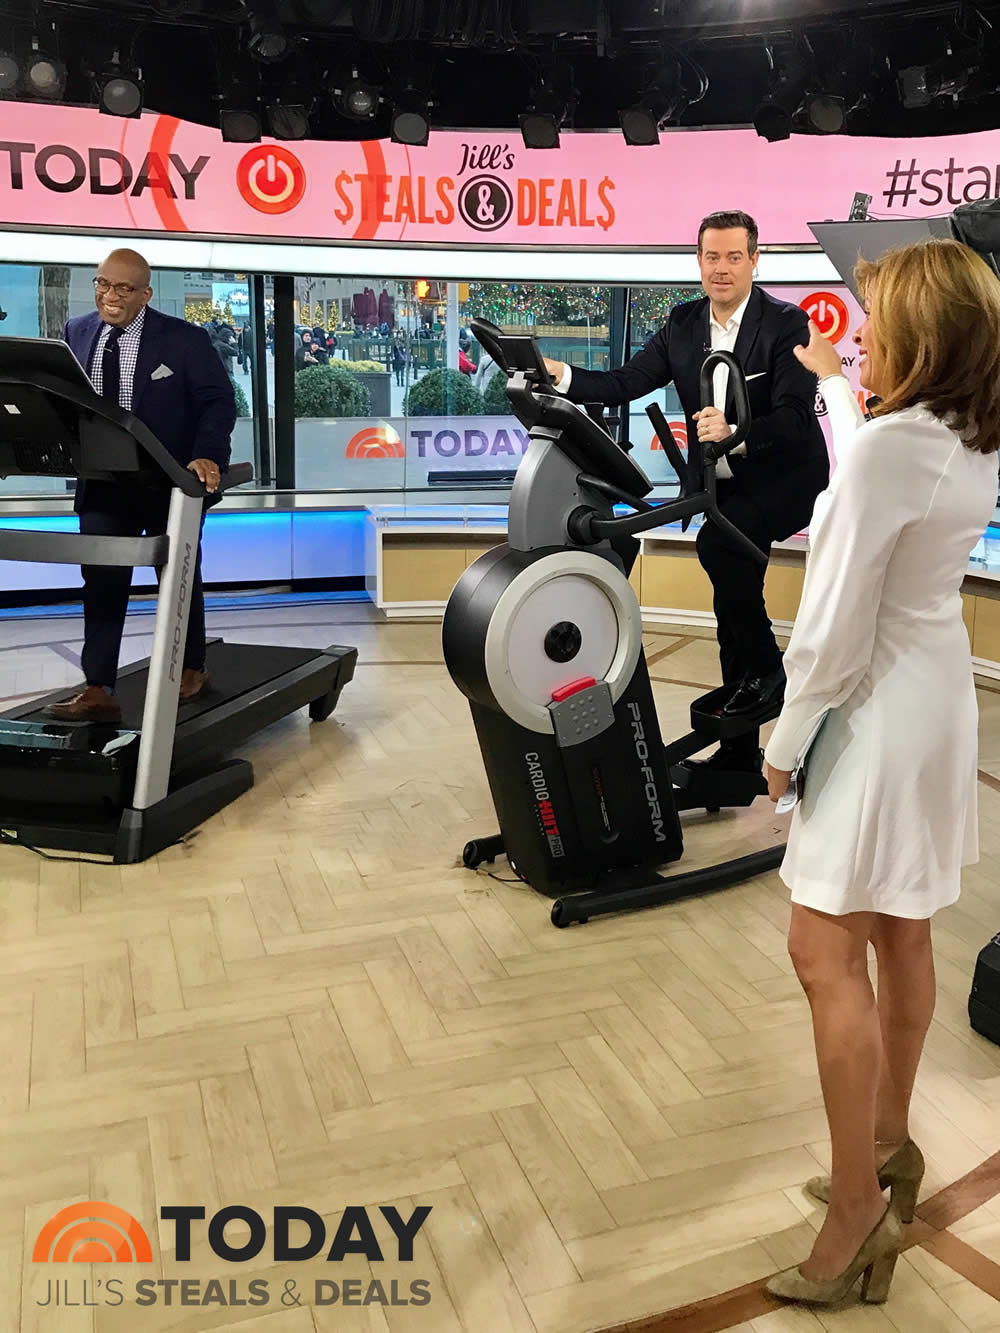 CARSON DALY HITS UP THE  PROFORM HIIT TRAINER PRO  ON THE TODAY SHOW. AL ROKER TRIES OUT THE  PROFORM 2000 TREADMILL . JILL'S STEALS AND DEALS